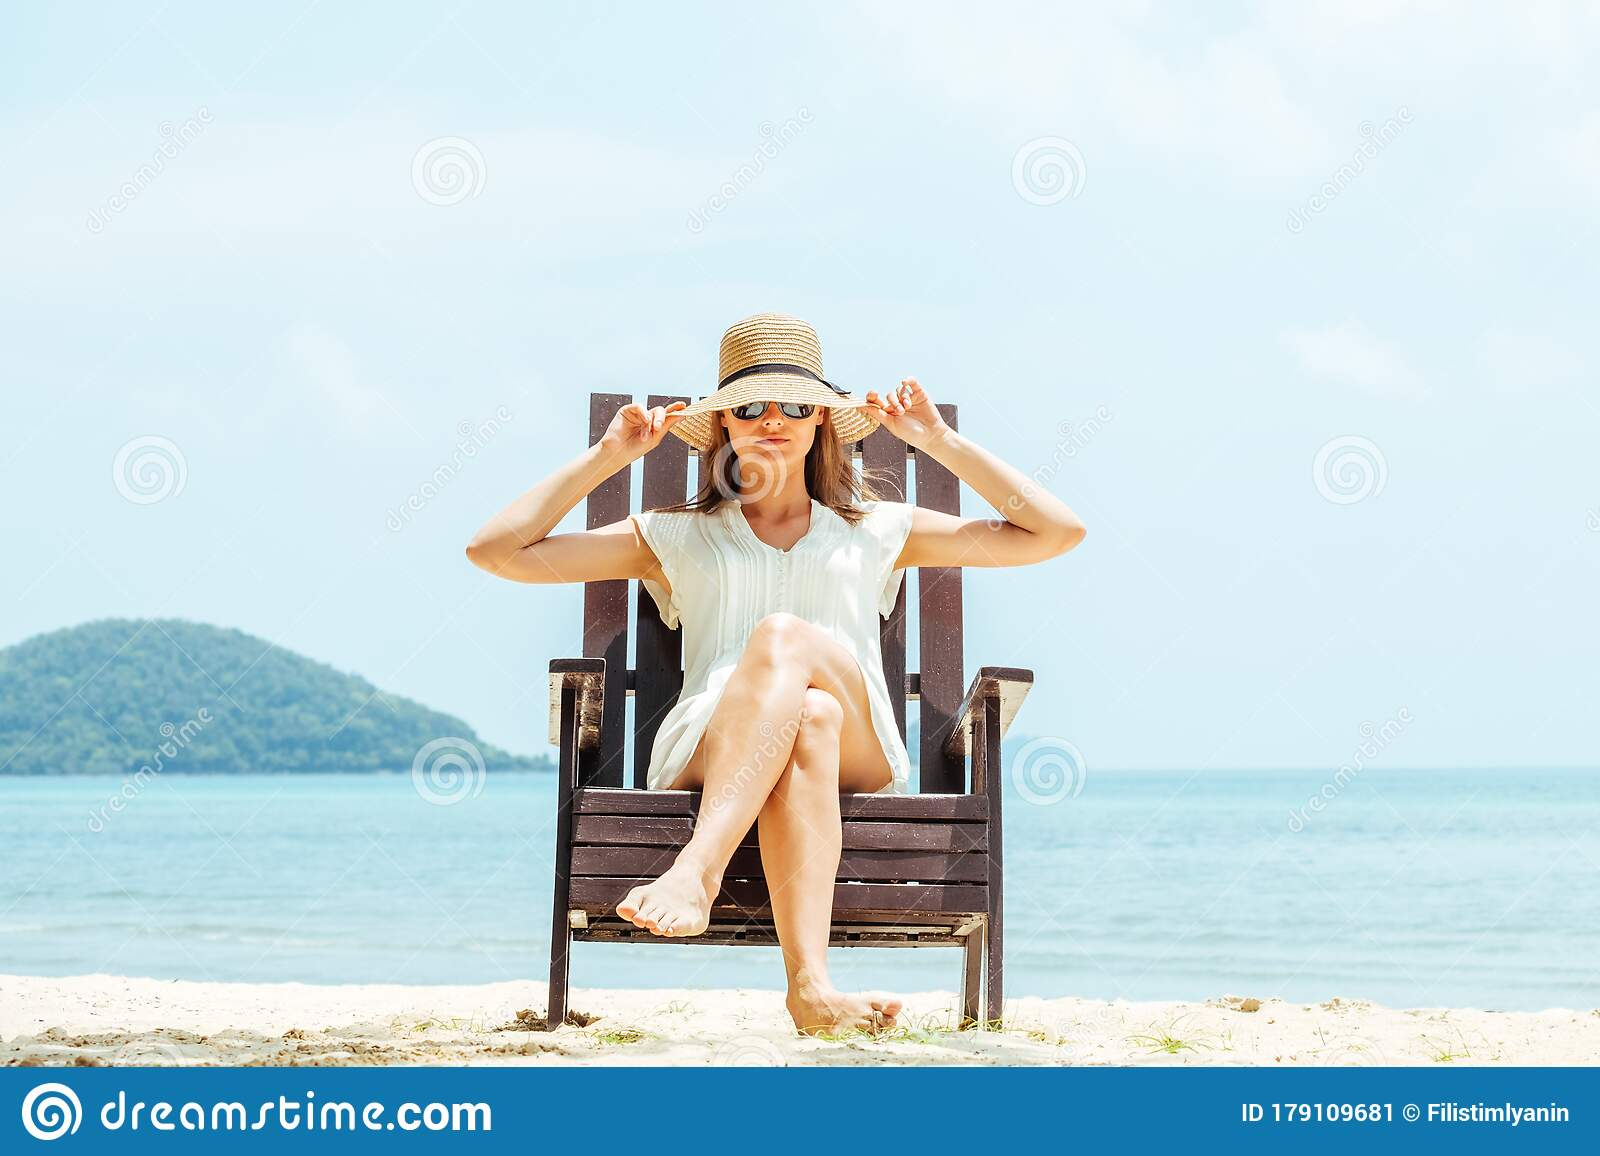 750 Happy Woman Sitting Beach Chair Tropical Young Photos Free Royalty Free Stock Photos From Dreamstime